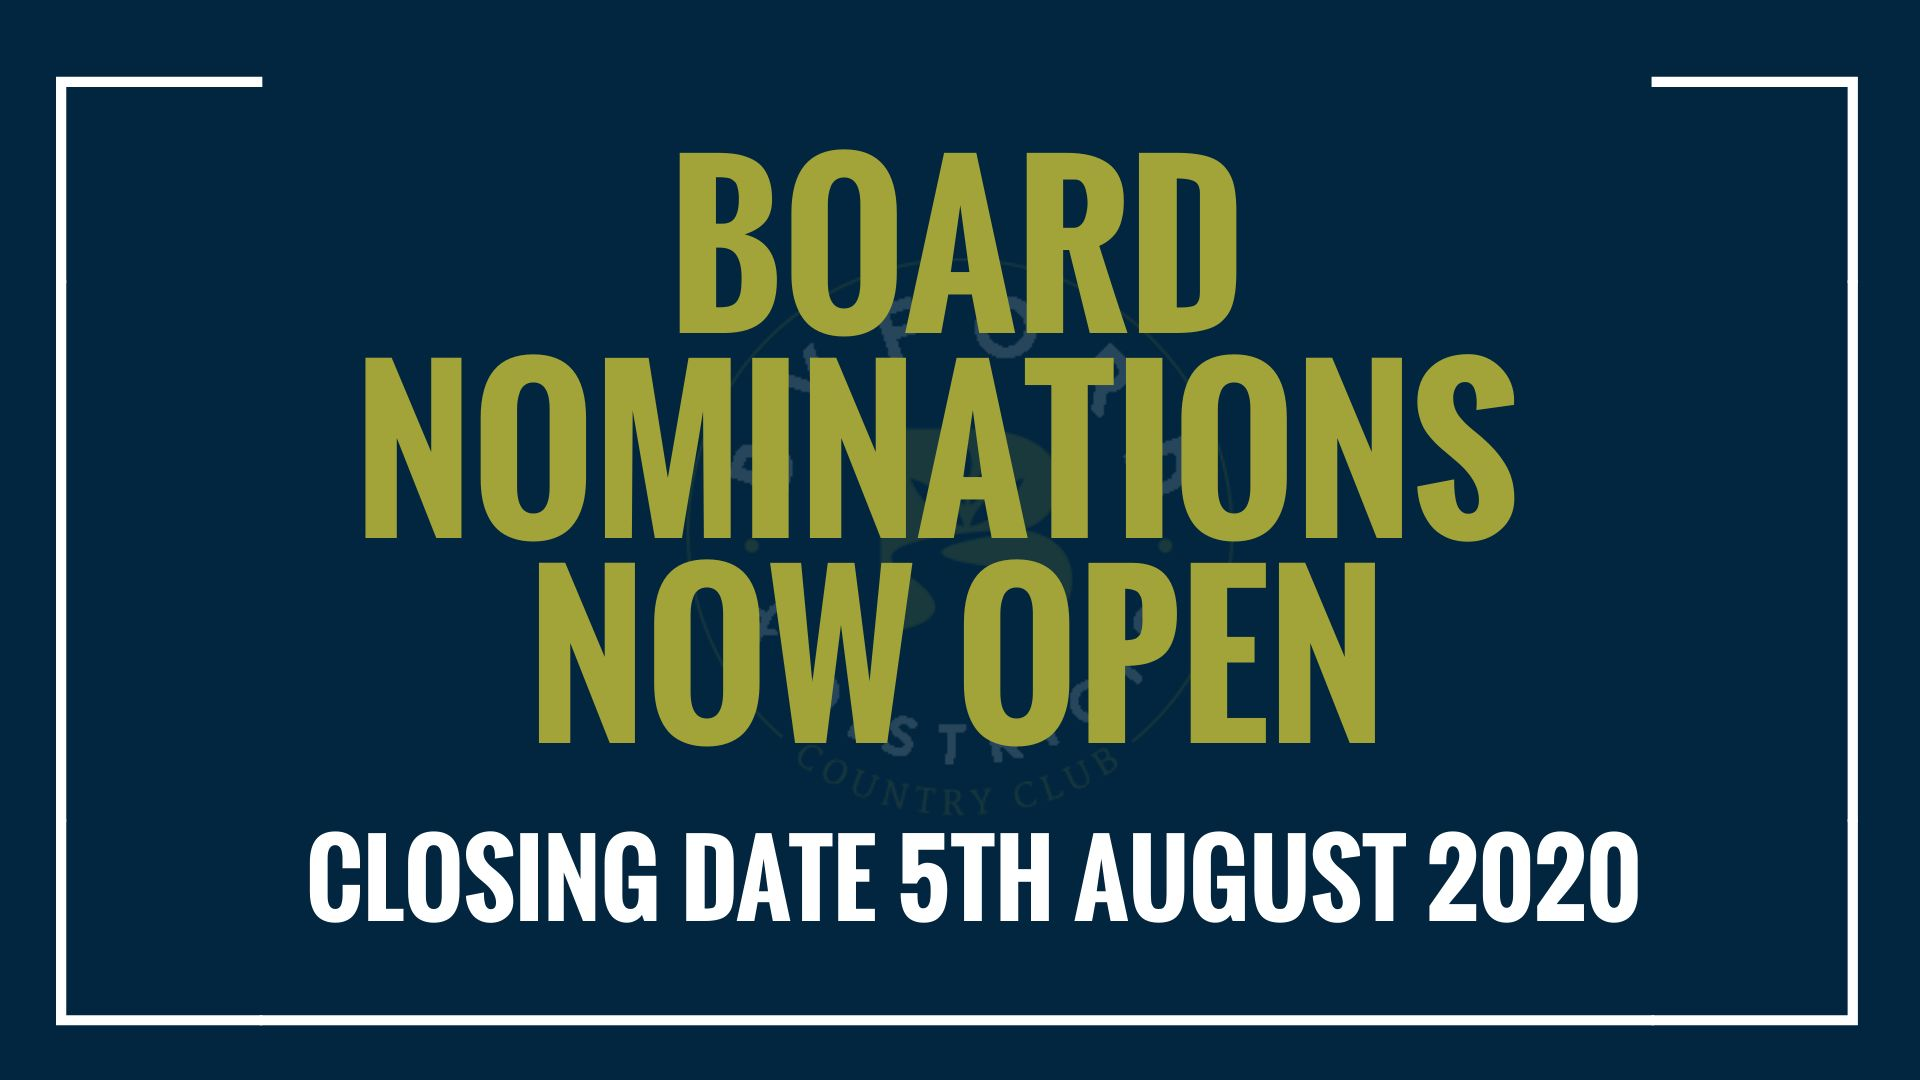 Board Nominations Now Open